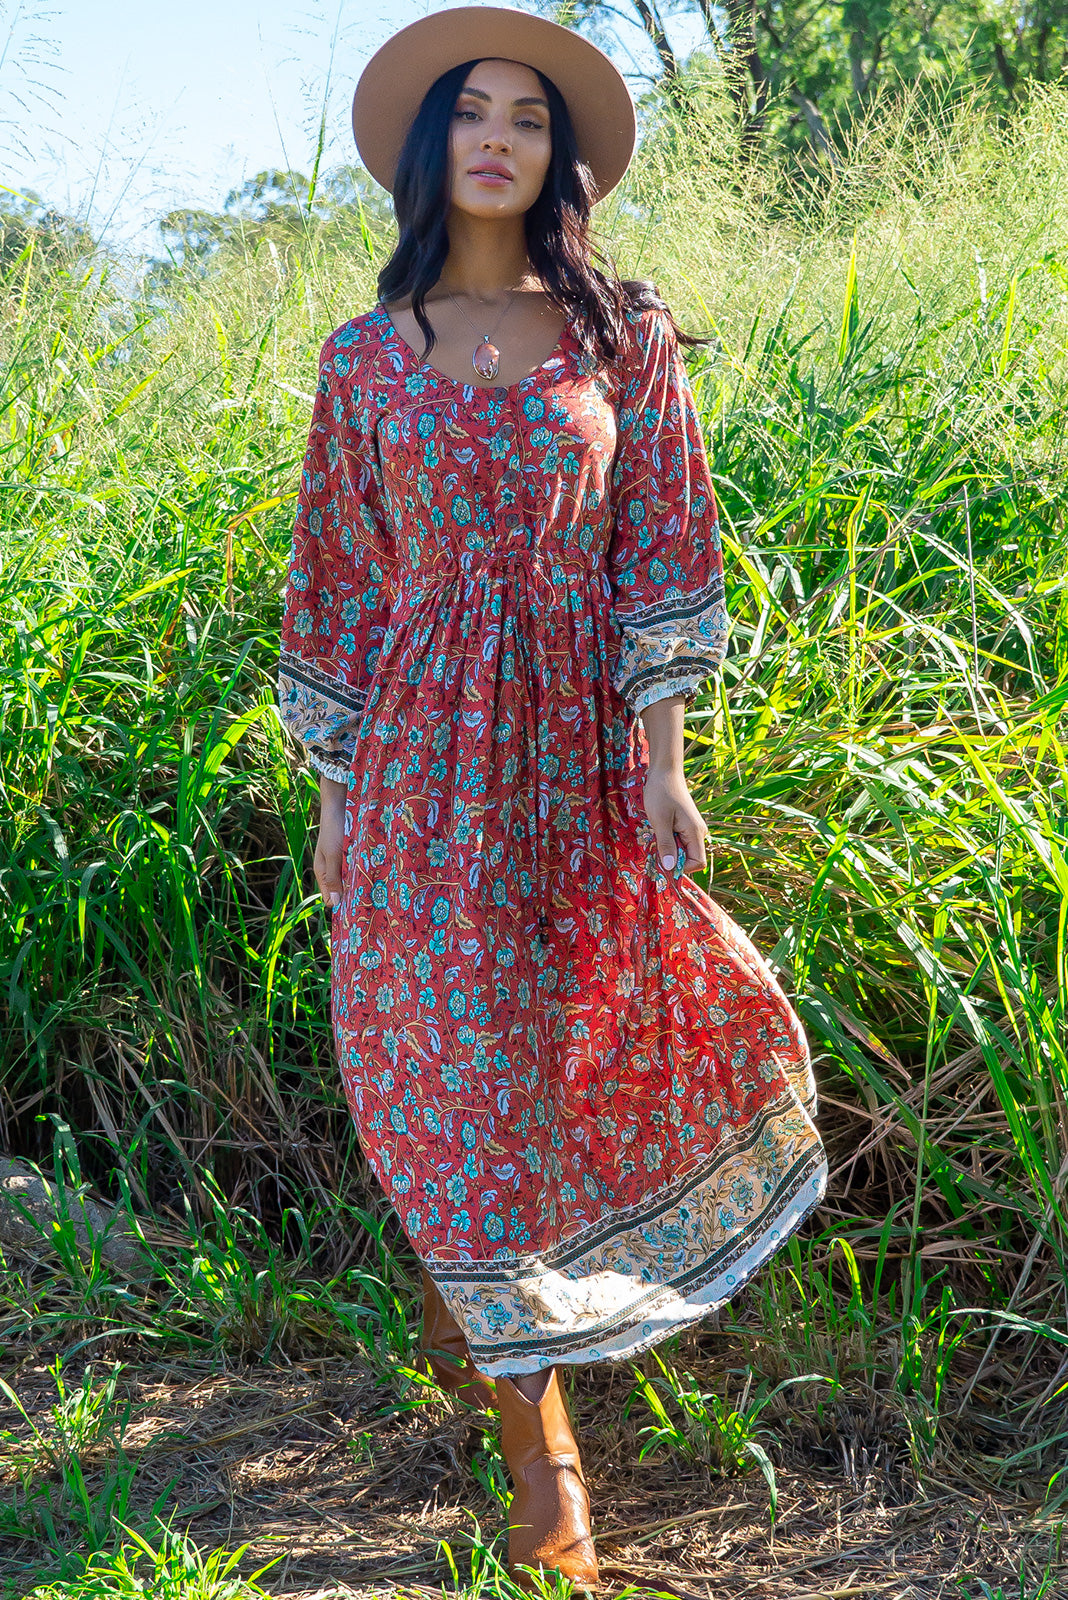 The Jaye Rusty Red Maxi Dress features functional button front chest, elasticated long sleeve, side pockets, adjustable drawstring waist, soft fit and woven 100% rayon in soft, orange red base with boho floral print and border feature.